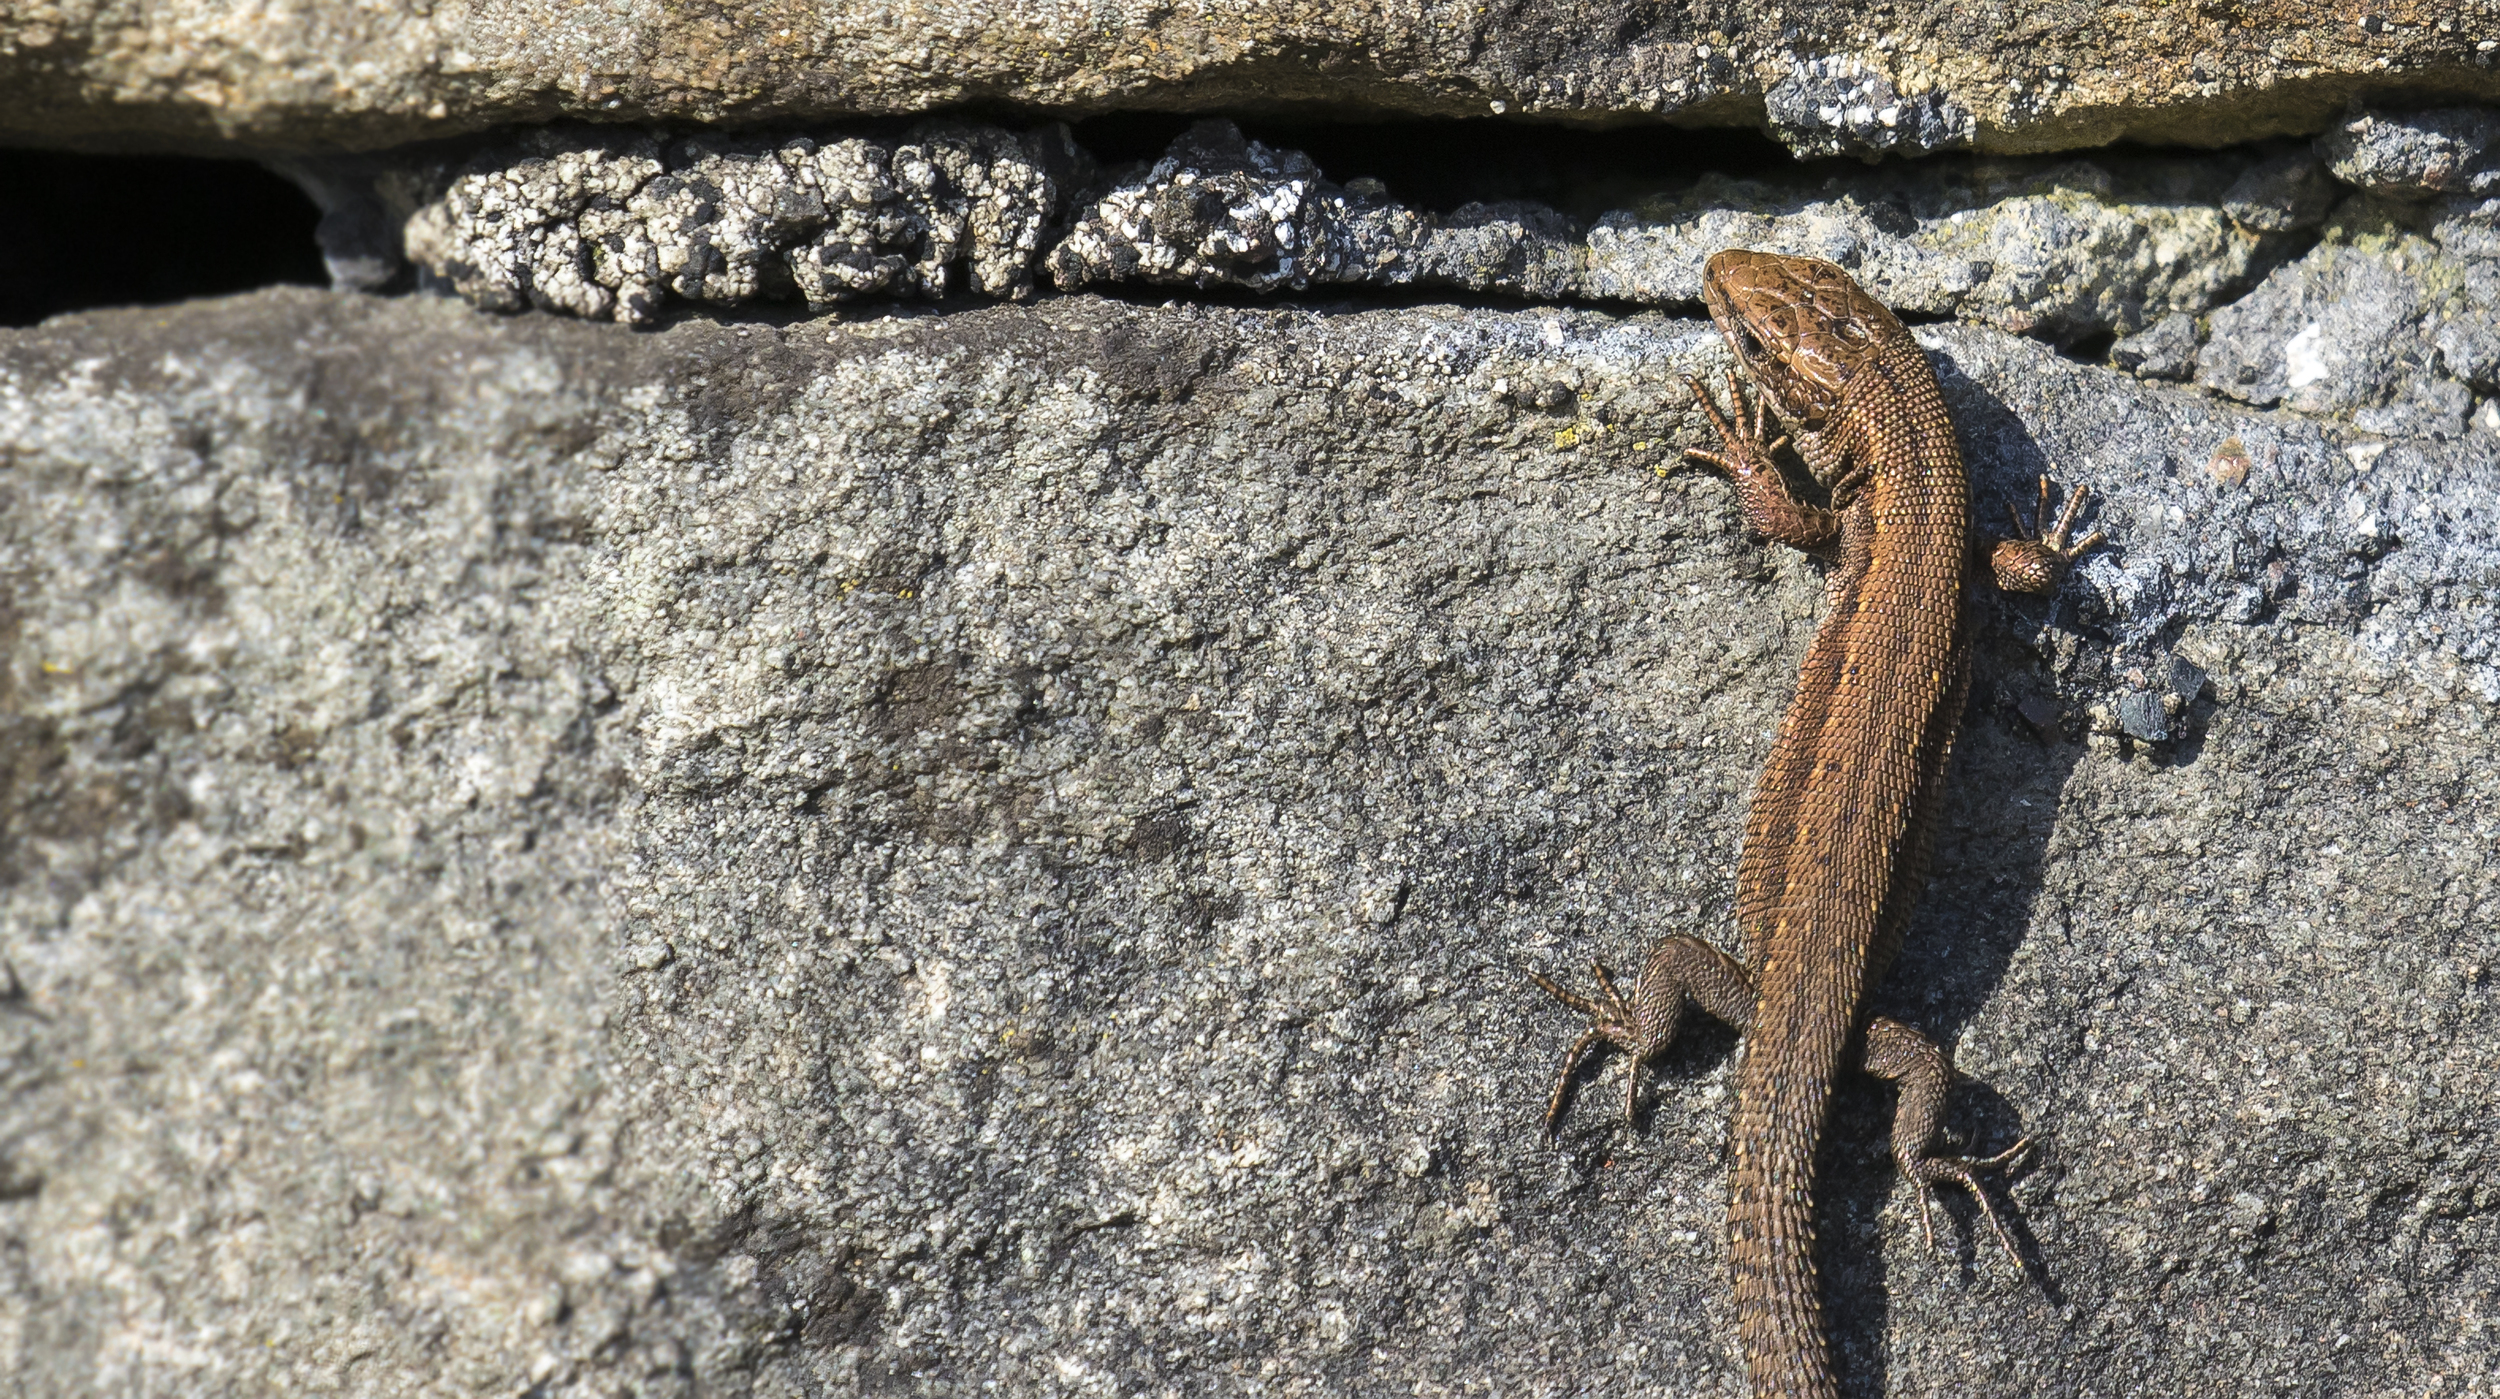 Common Lizard 22nd March.jpg